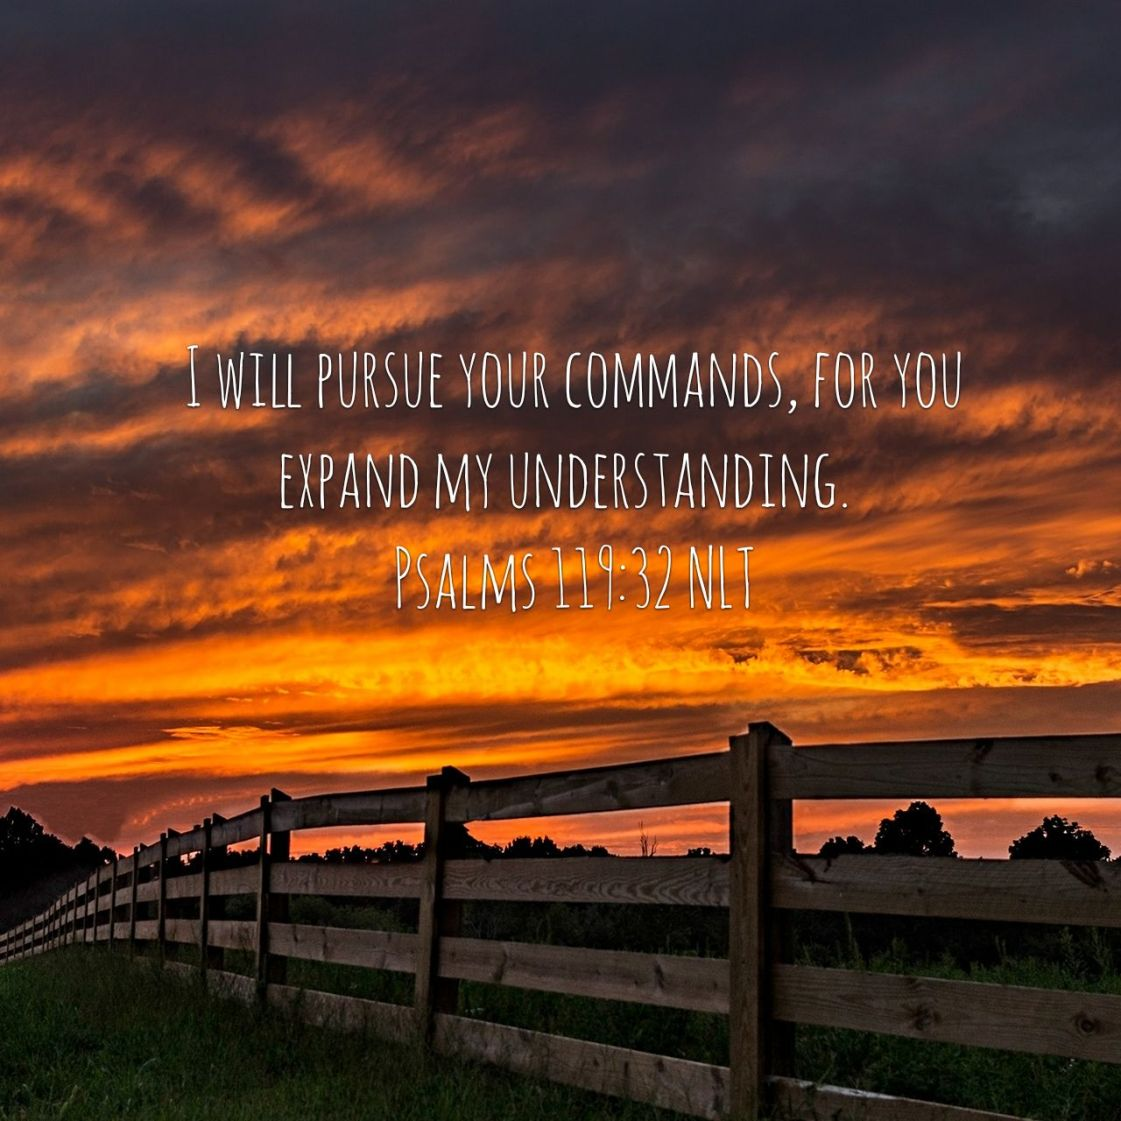 I will pursue your commands, for you expand my understanding. - Psalms119:32 NLT